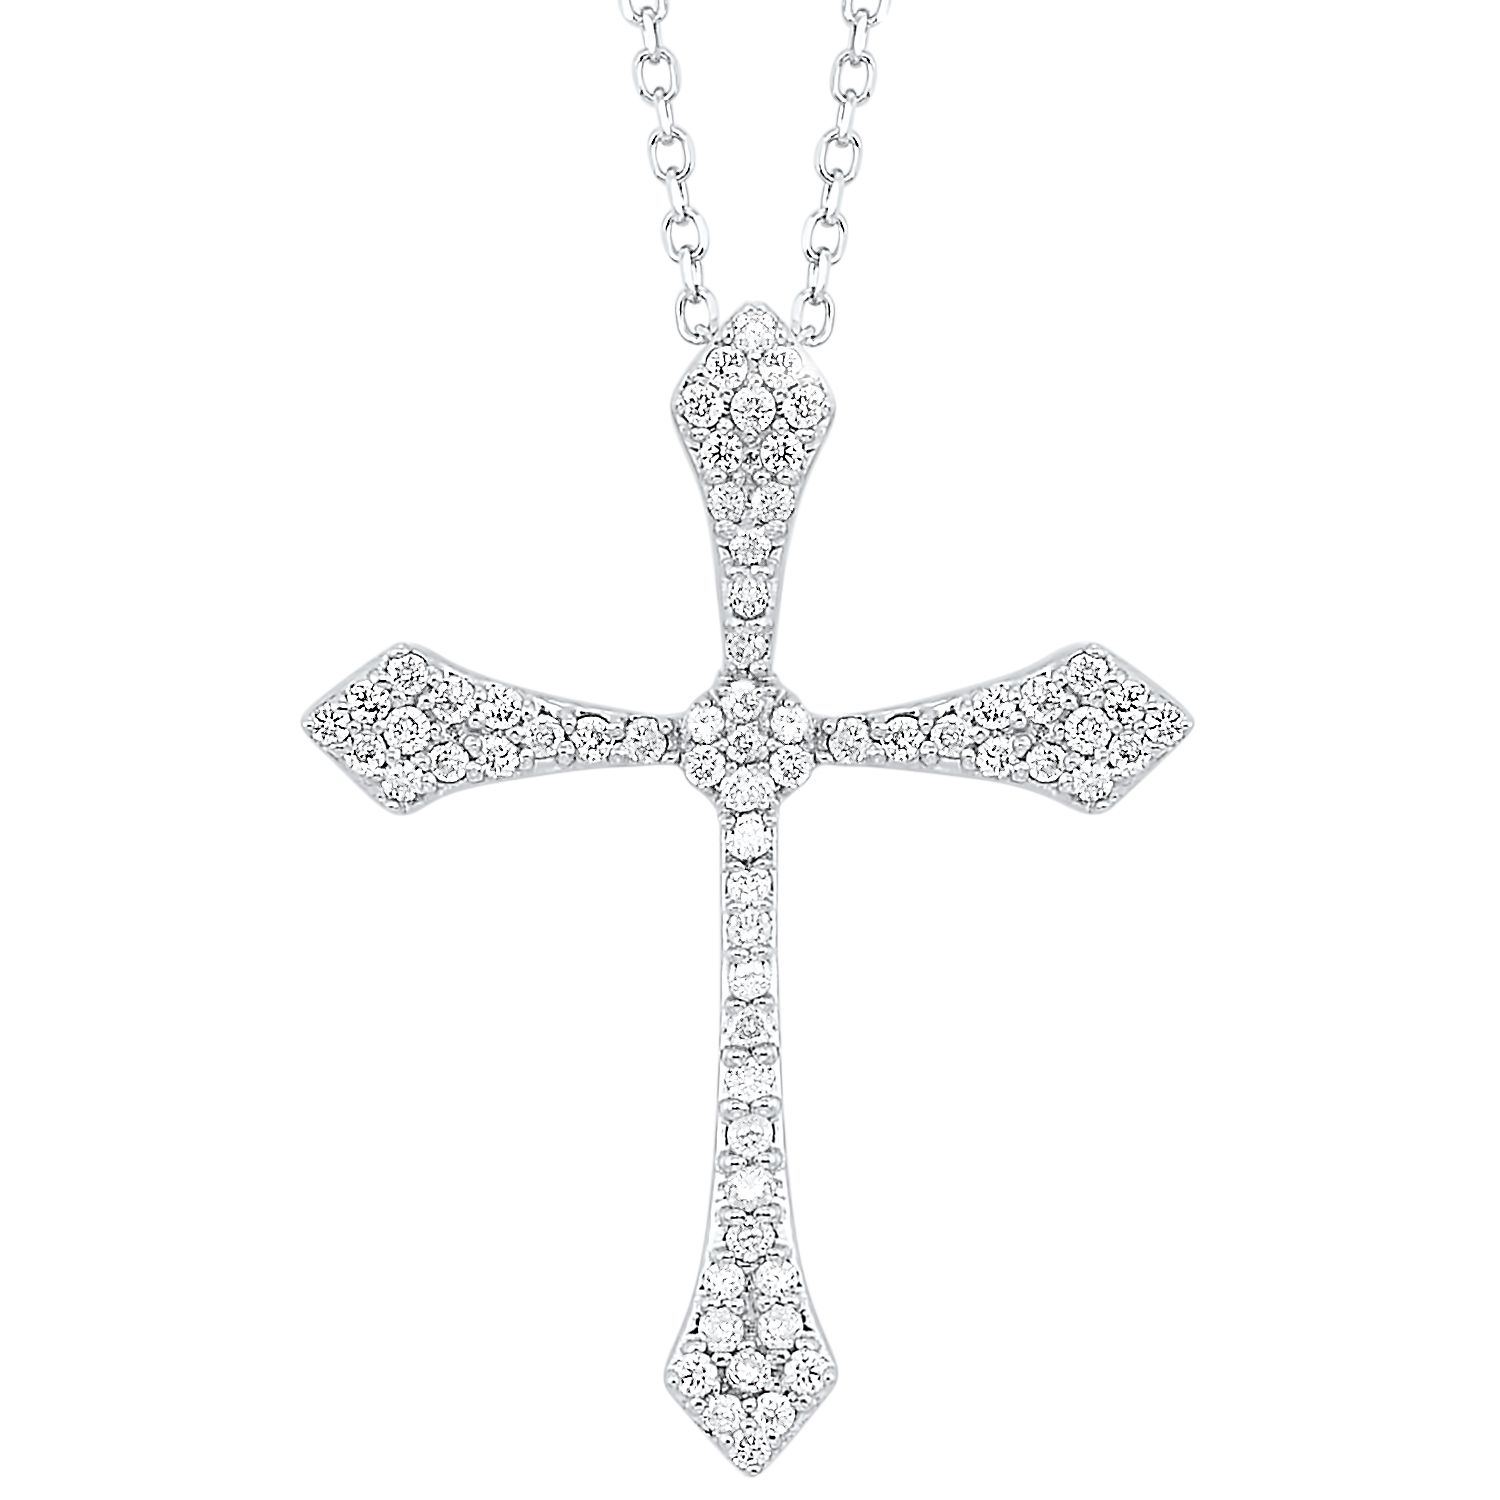 14K White Gold Cross Shared Prong Diamond Necklace 1/4CT Moseley Diamond Showcase Inc Columbia, SC